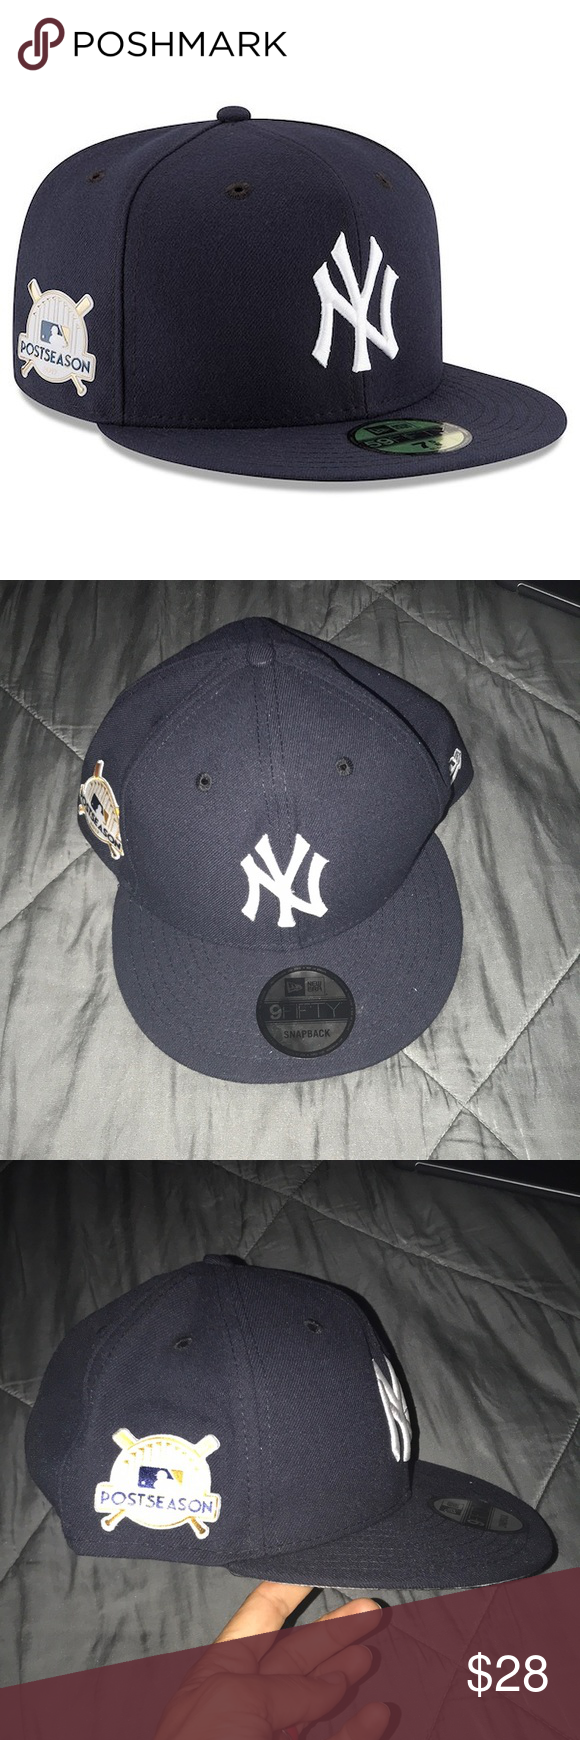 60b2b94947921 New era New York Yankees postseason 17 hat Brand new. Smoke and pet free  home. A little bent and misshaped from storage New Era Accessories Hats